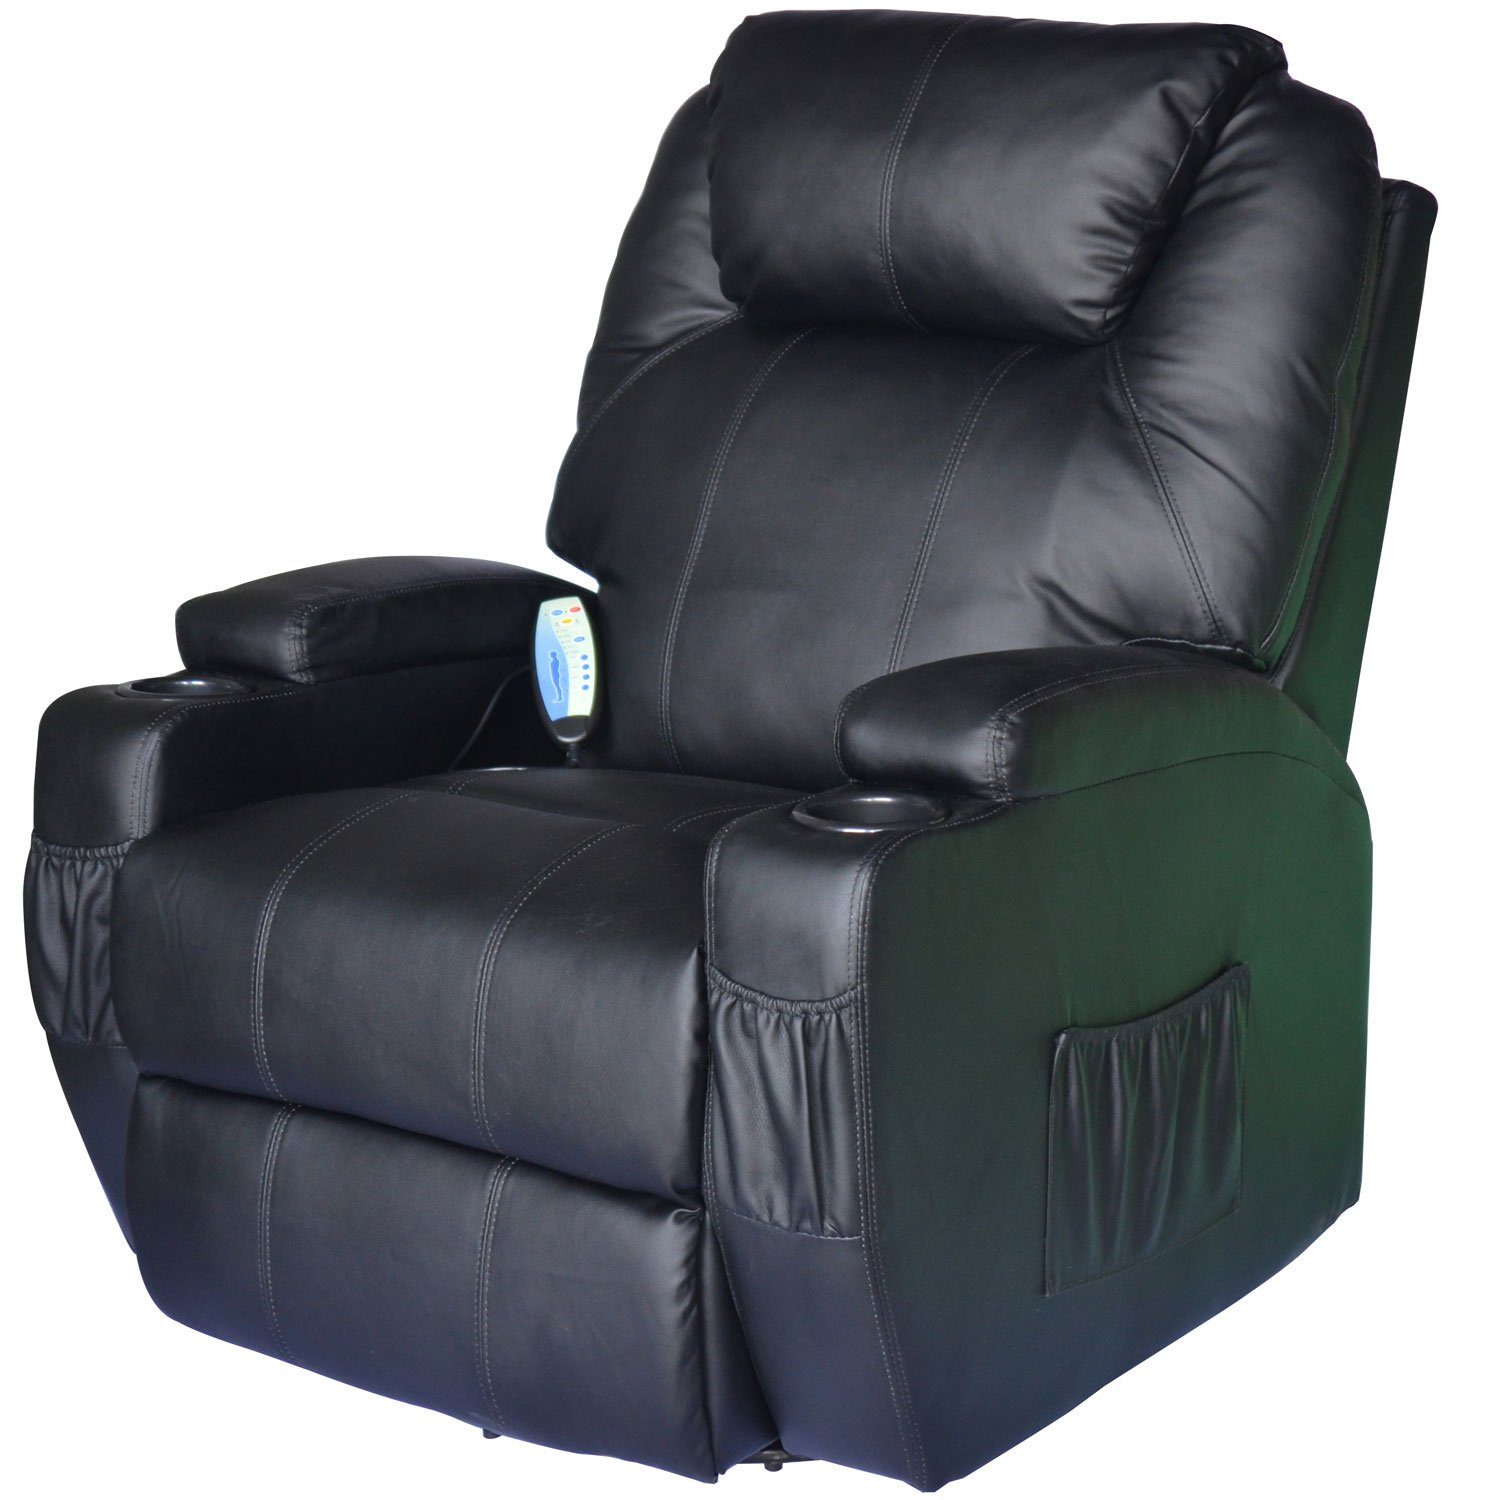 sc 1 st  Flipboard & Top 10 Best Heavy Duty Recliners for Big Men 2016-2017 on Flipboard islam-shia.org